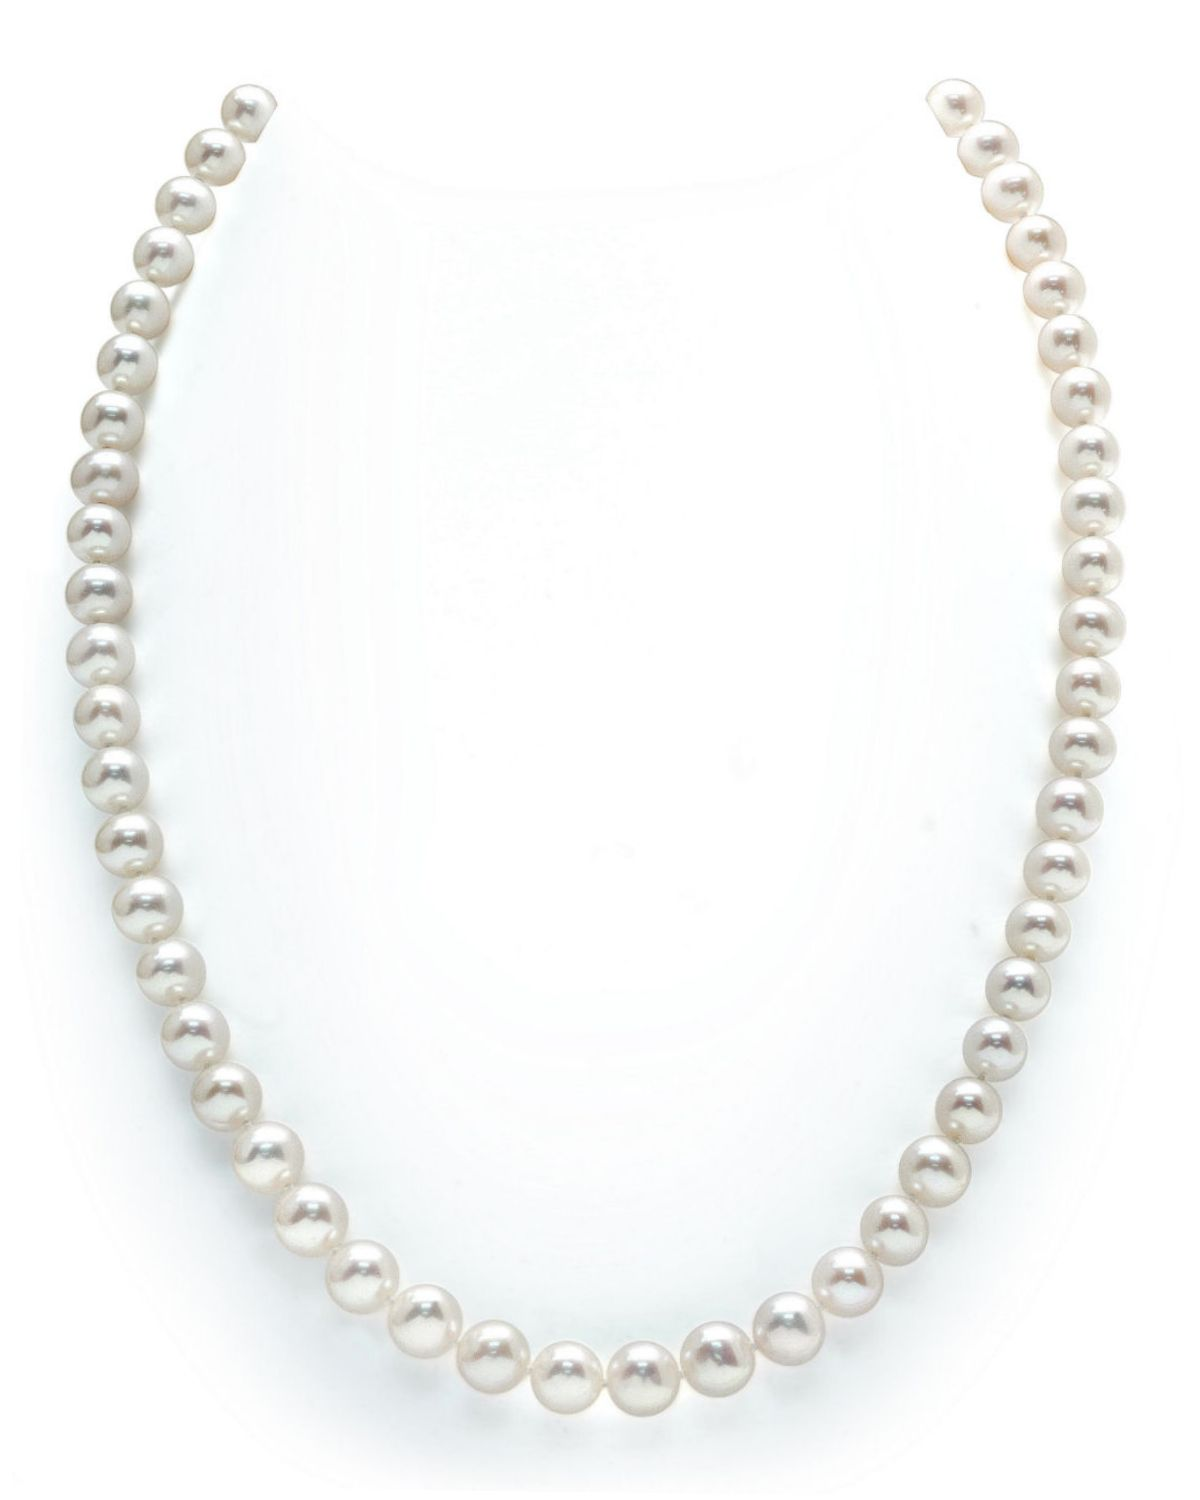 c5bc534b5 7-8mm White Freshwater Pearl Necklace - AAAA Quality